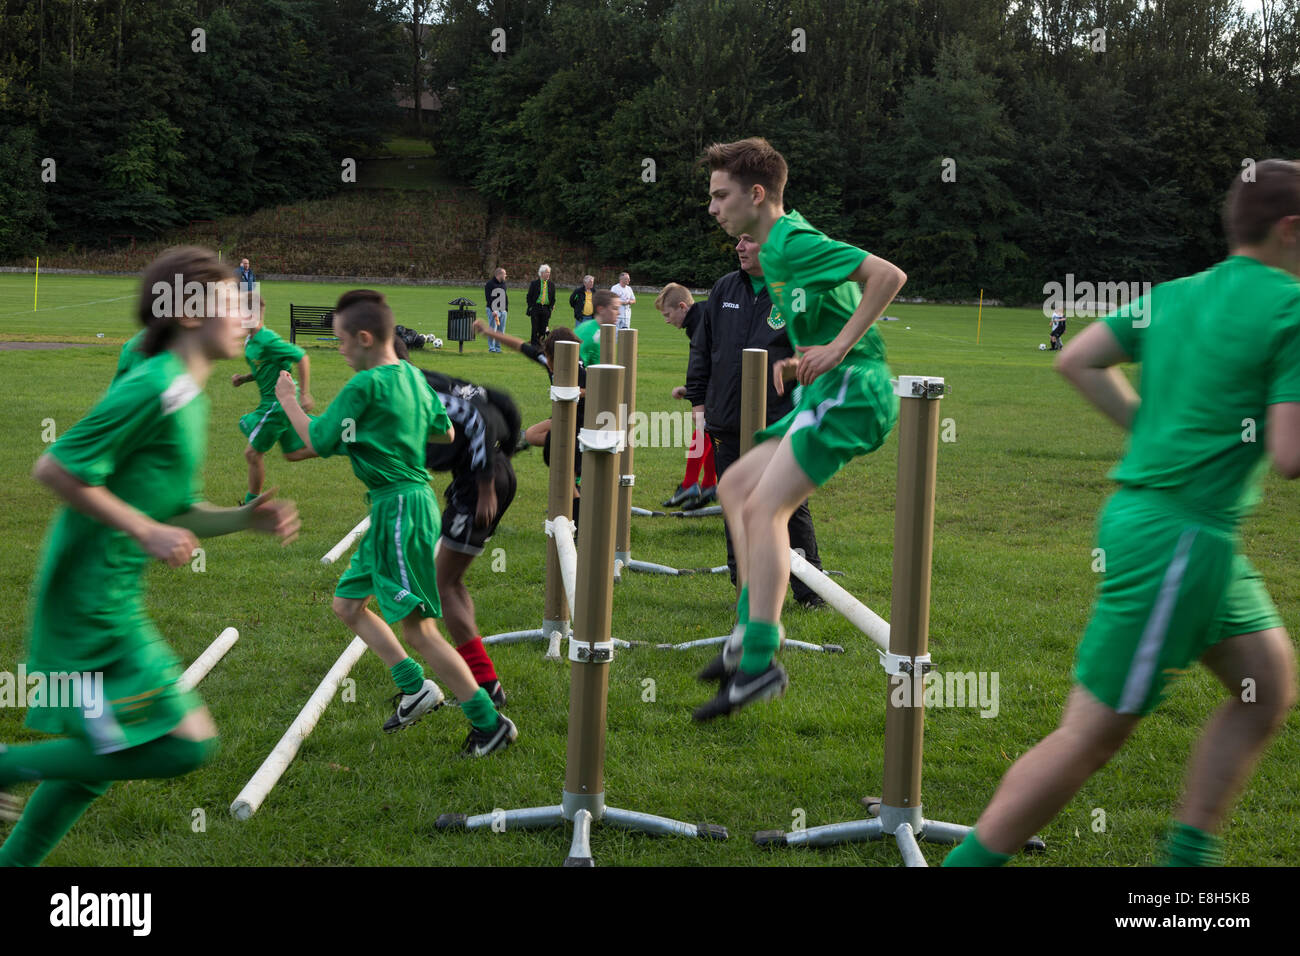 Training session at the Jimmy Johnstone Academy in Cathkin Park